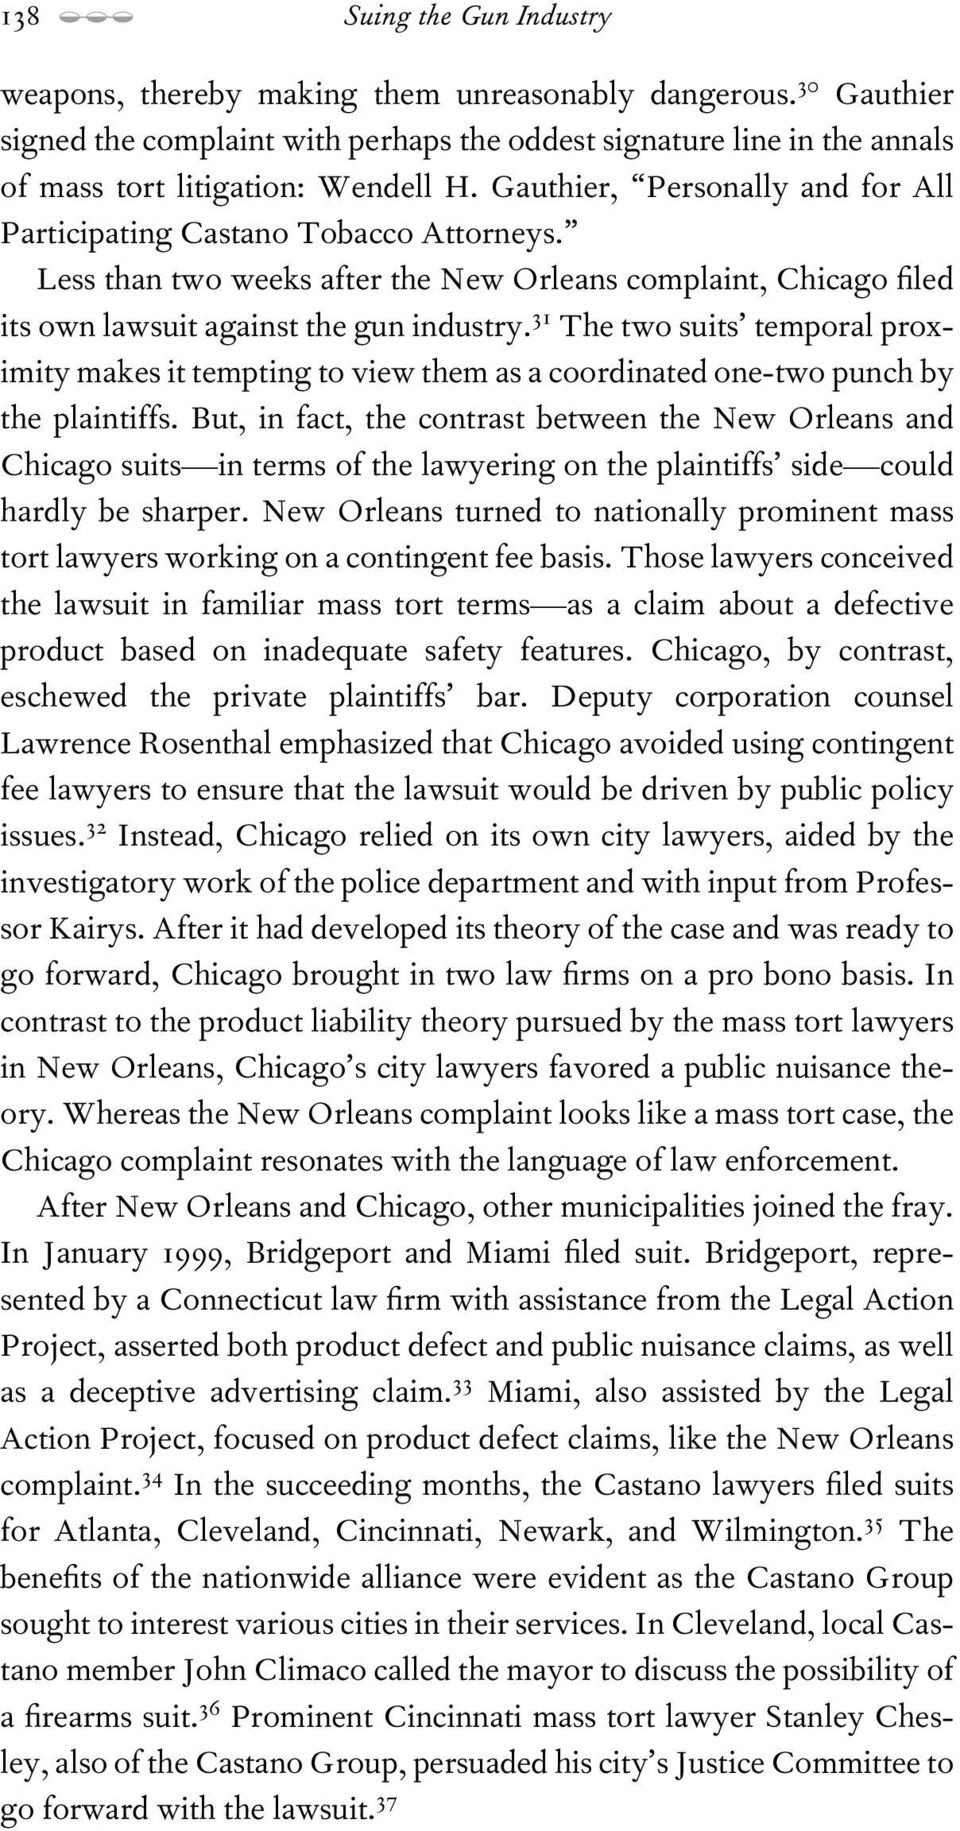 Less than two weeks after the New Orleans complaint, Chicago led its own lawsuit against the gun industry.